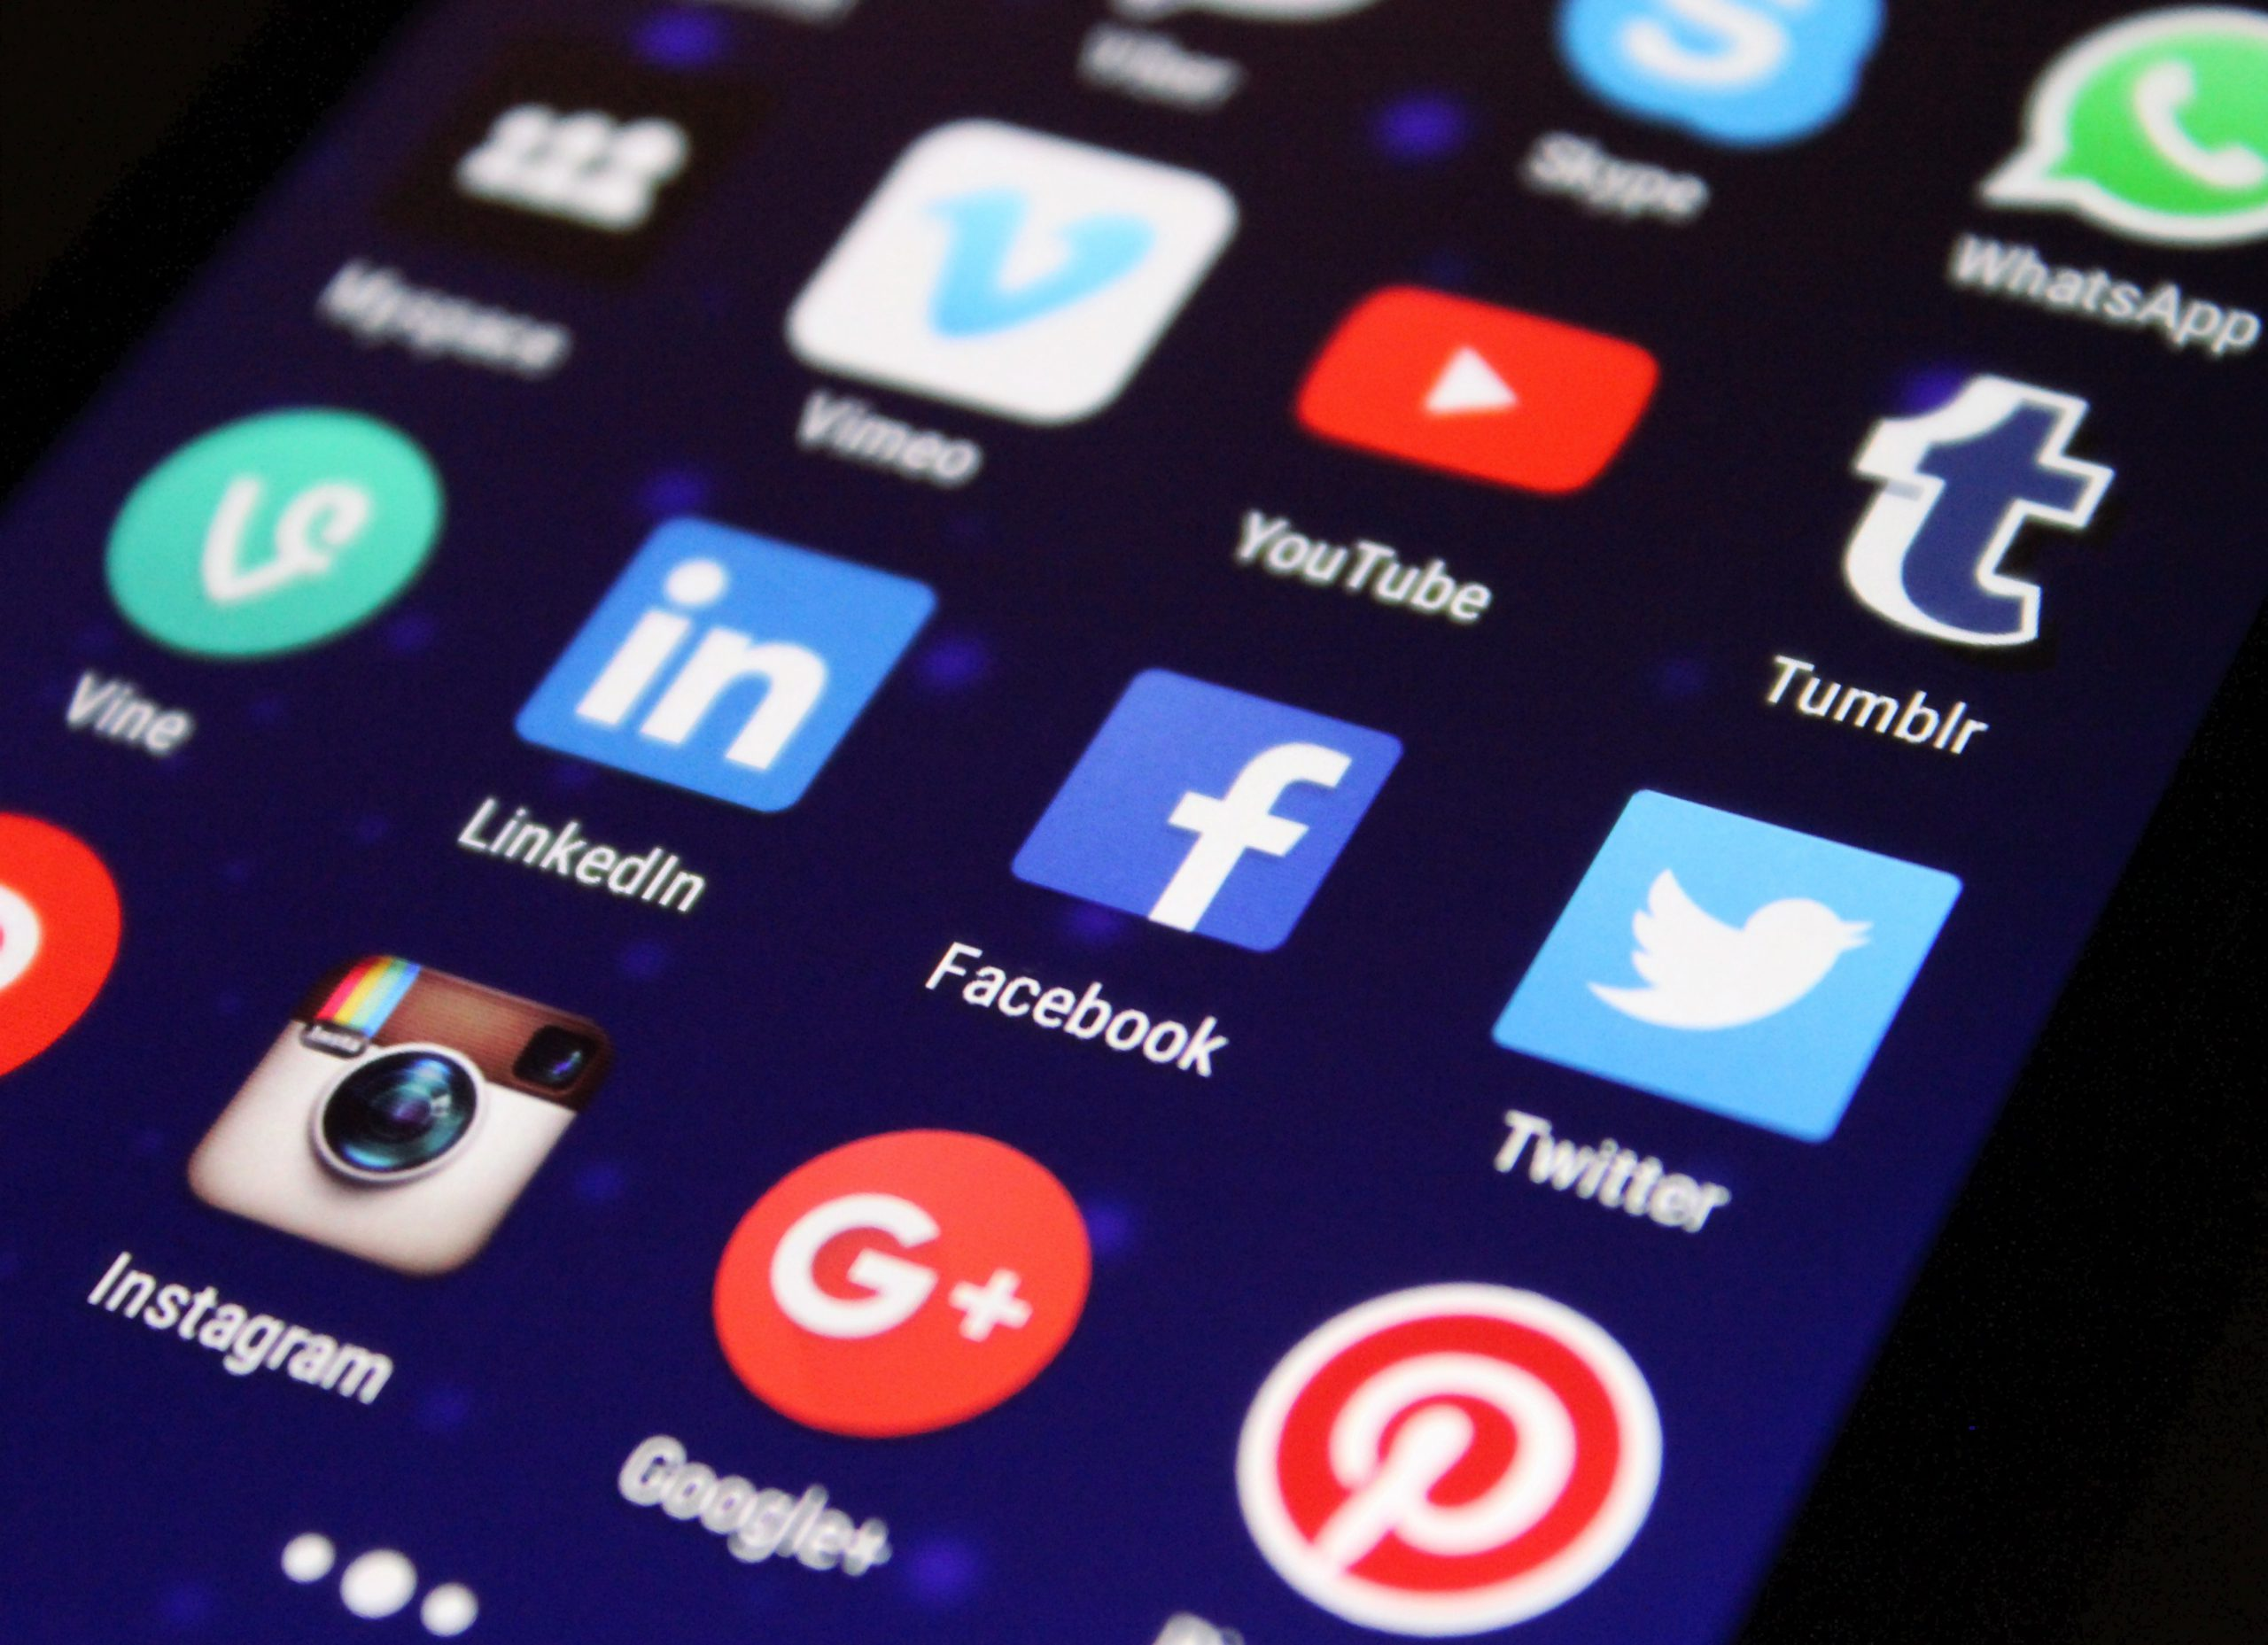 Digital marketing has converted the world into a global village